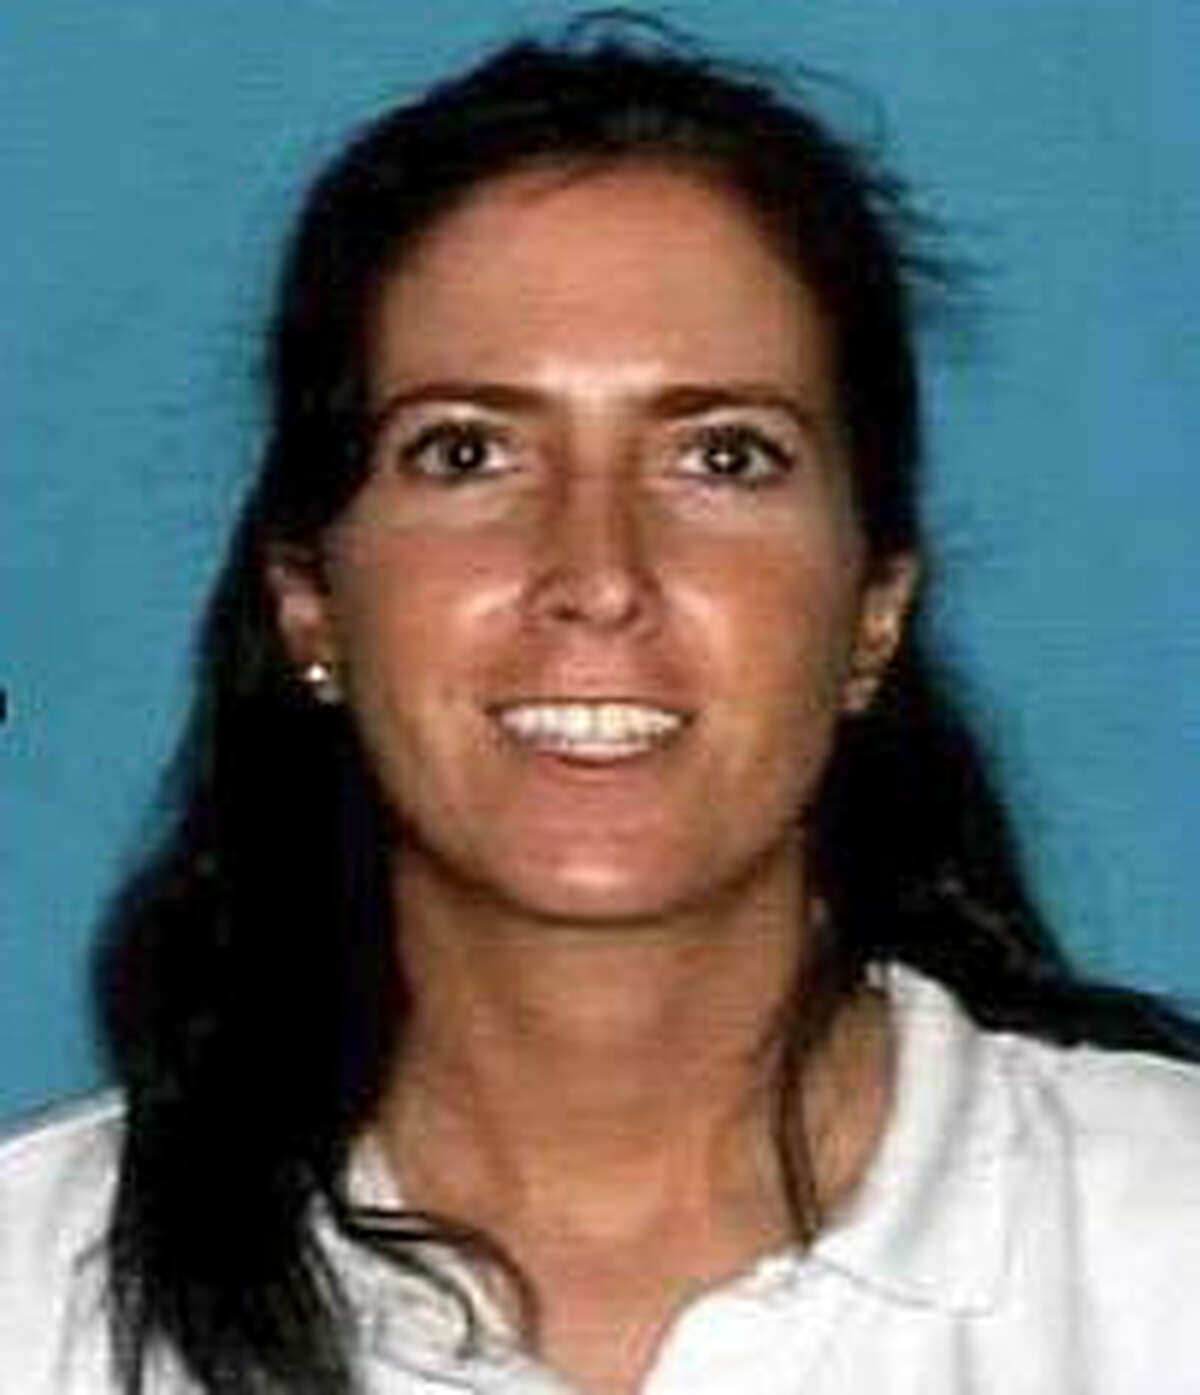 A driver's license photo of a woman who called herself Lori Erica Ruff. Her real identity remained a mystery six years after she committed suicide in Longview in 2010. Click through to see more about the mystery and her real name.